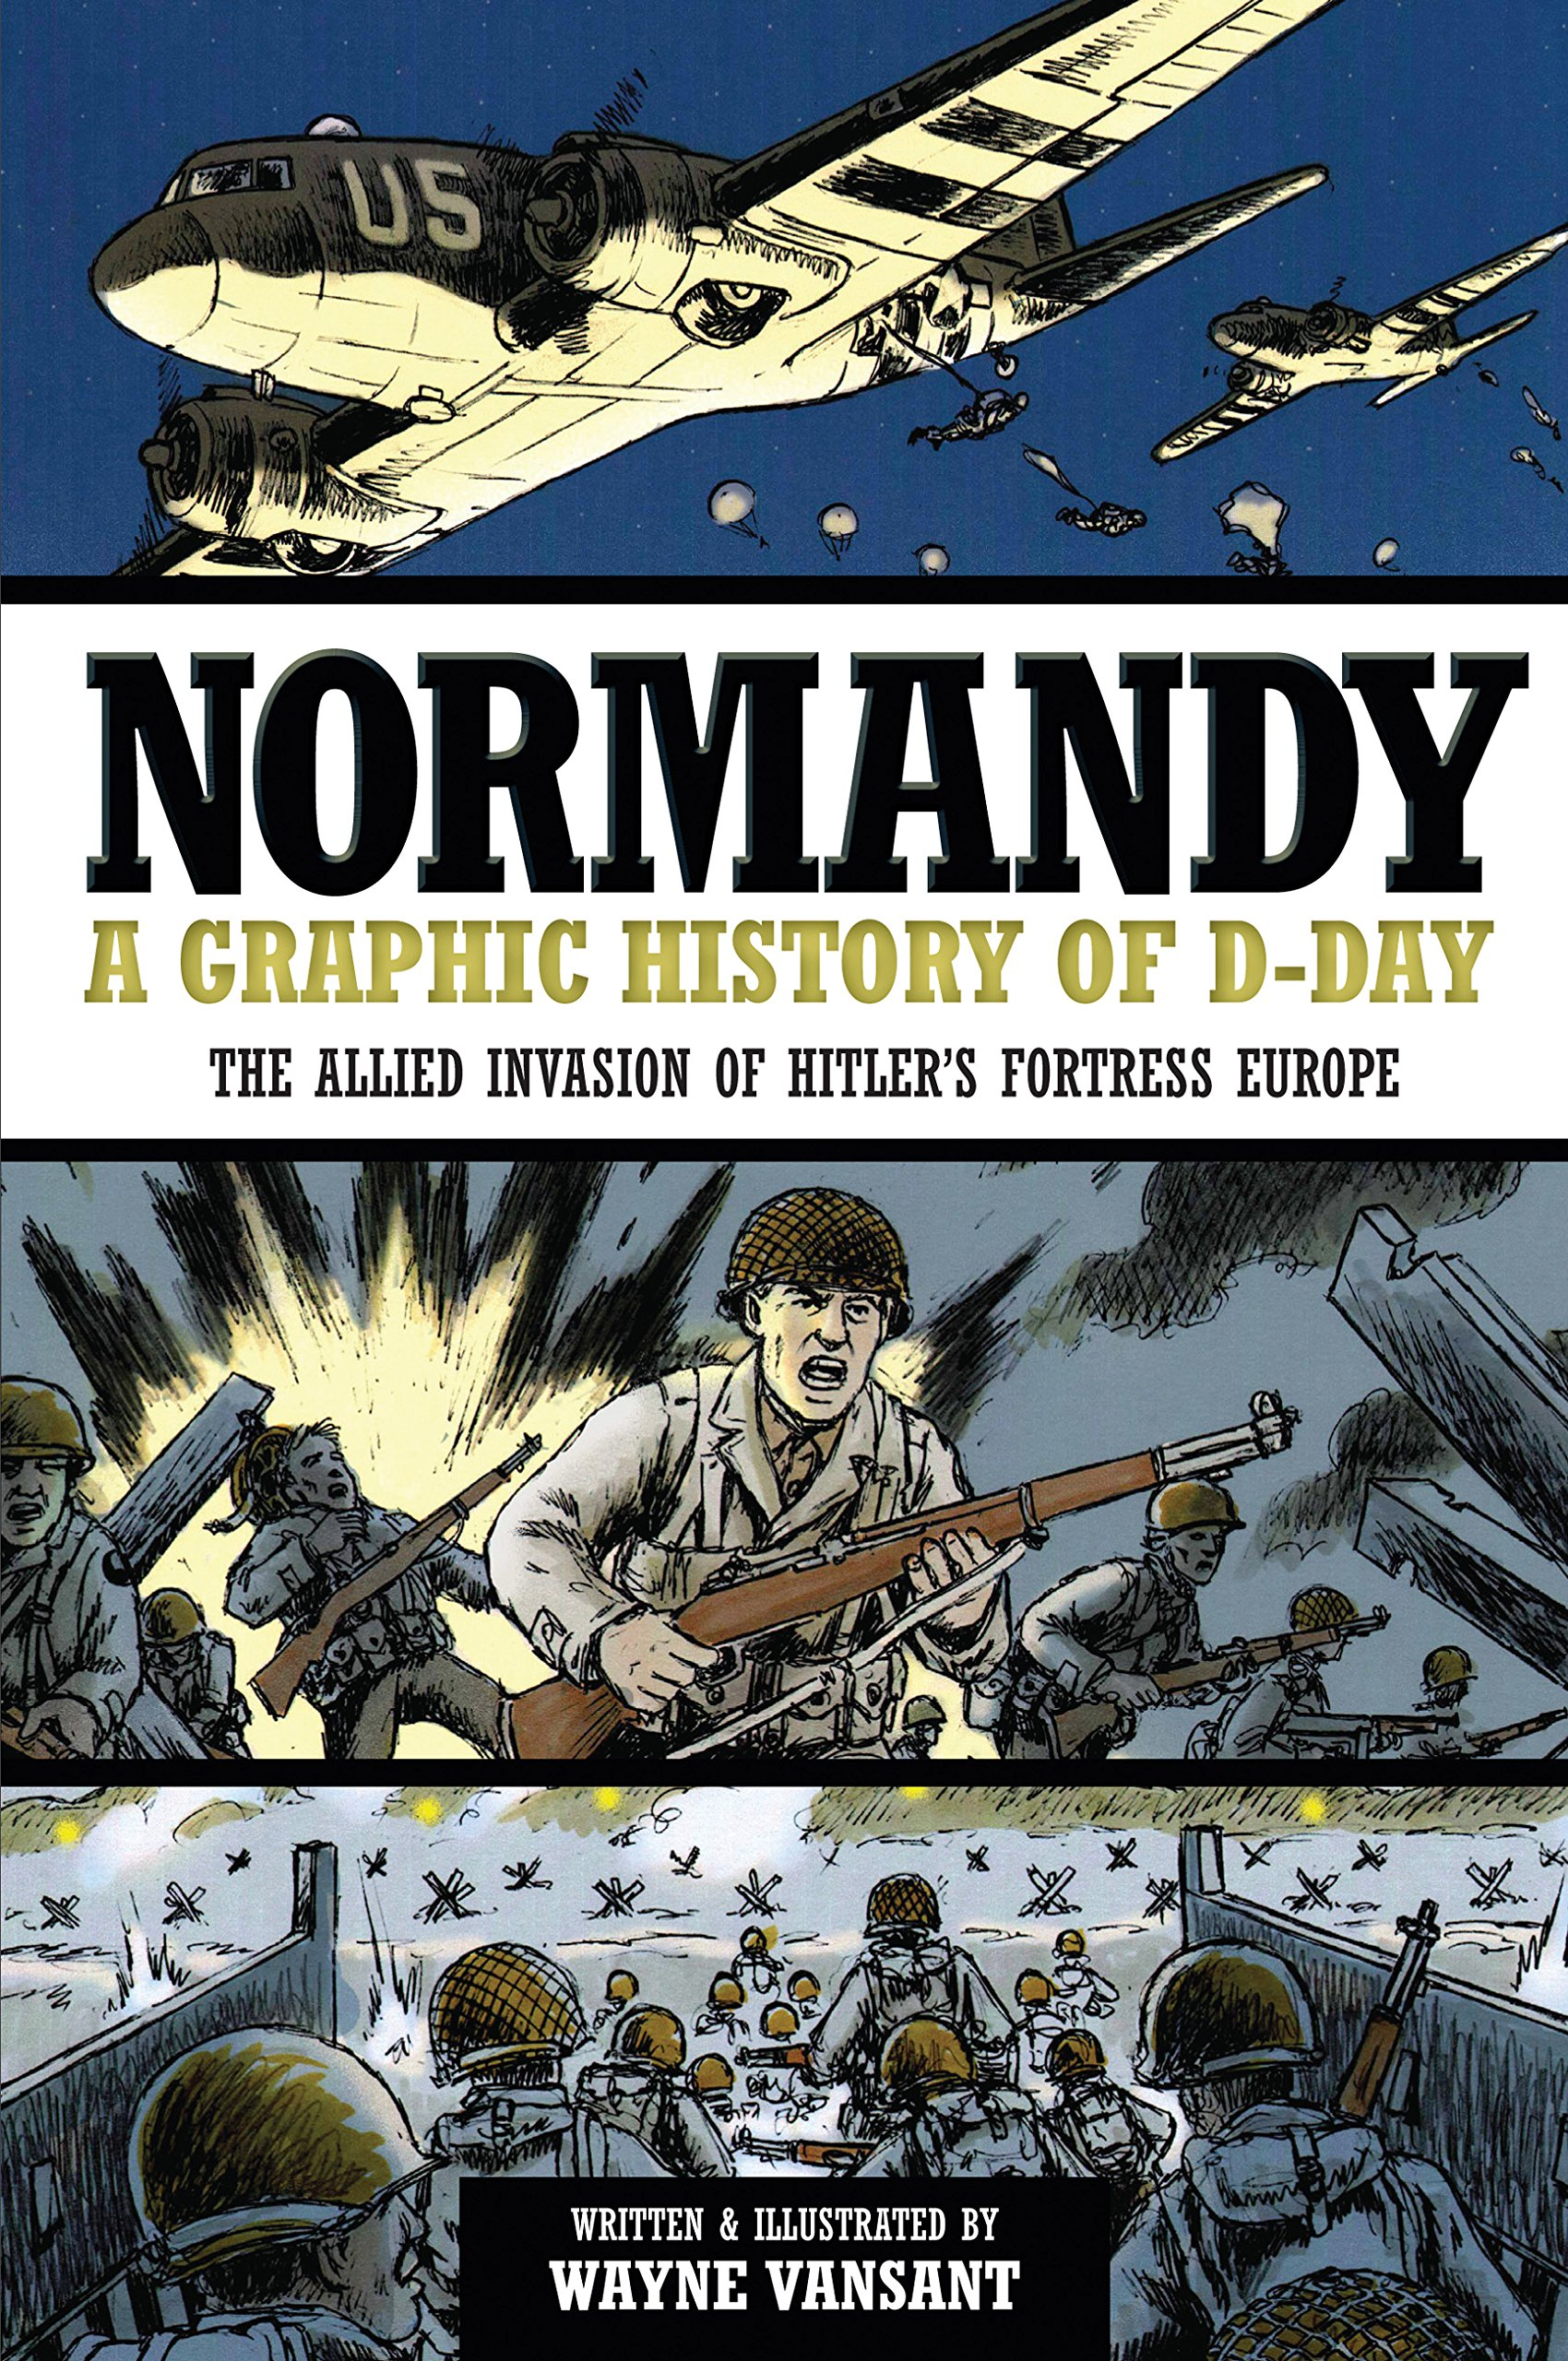 Normandy: A Graphic History of D-Day, The Allied Invasion of